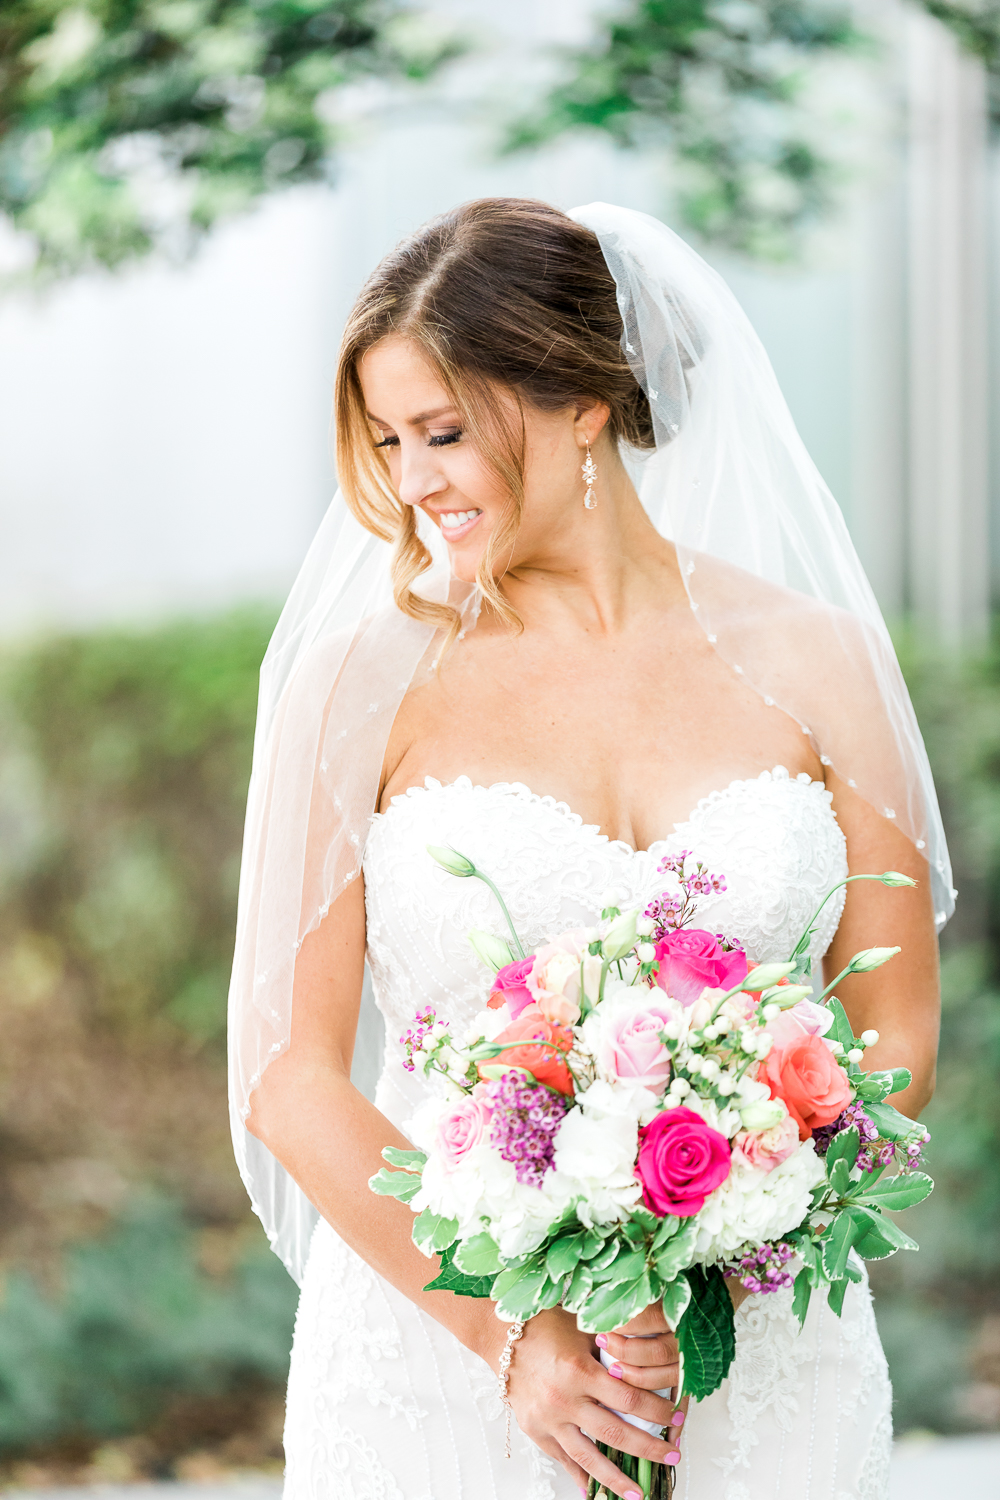 Bride with her beautiful bouquet